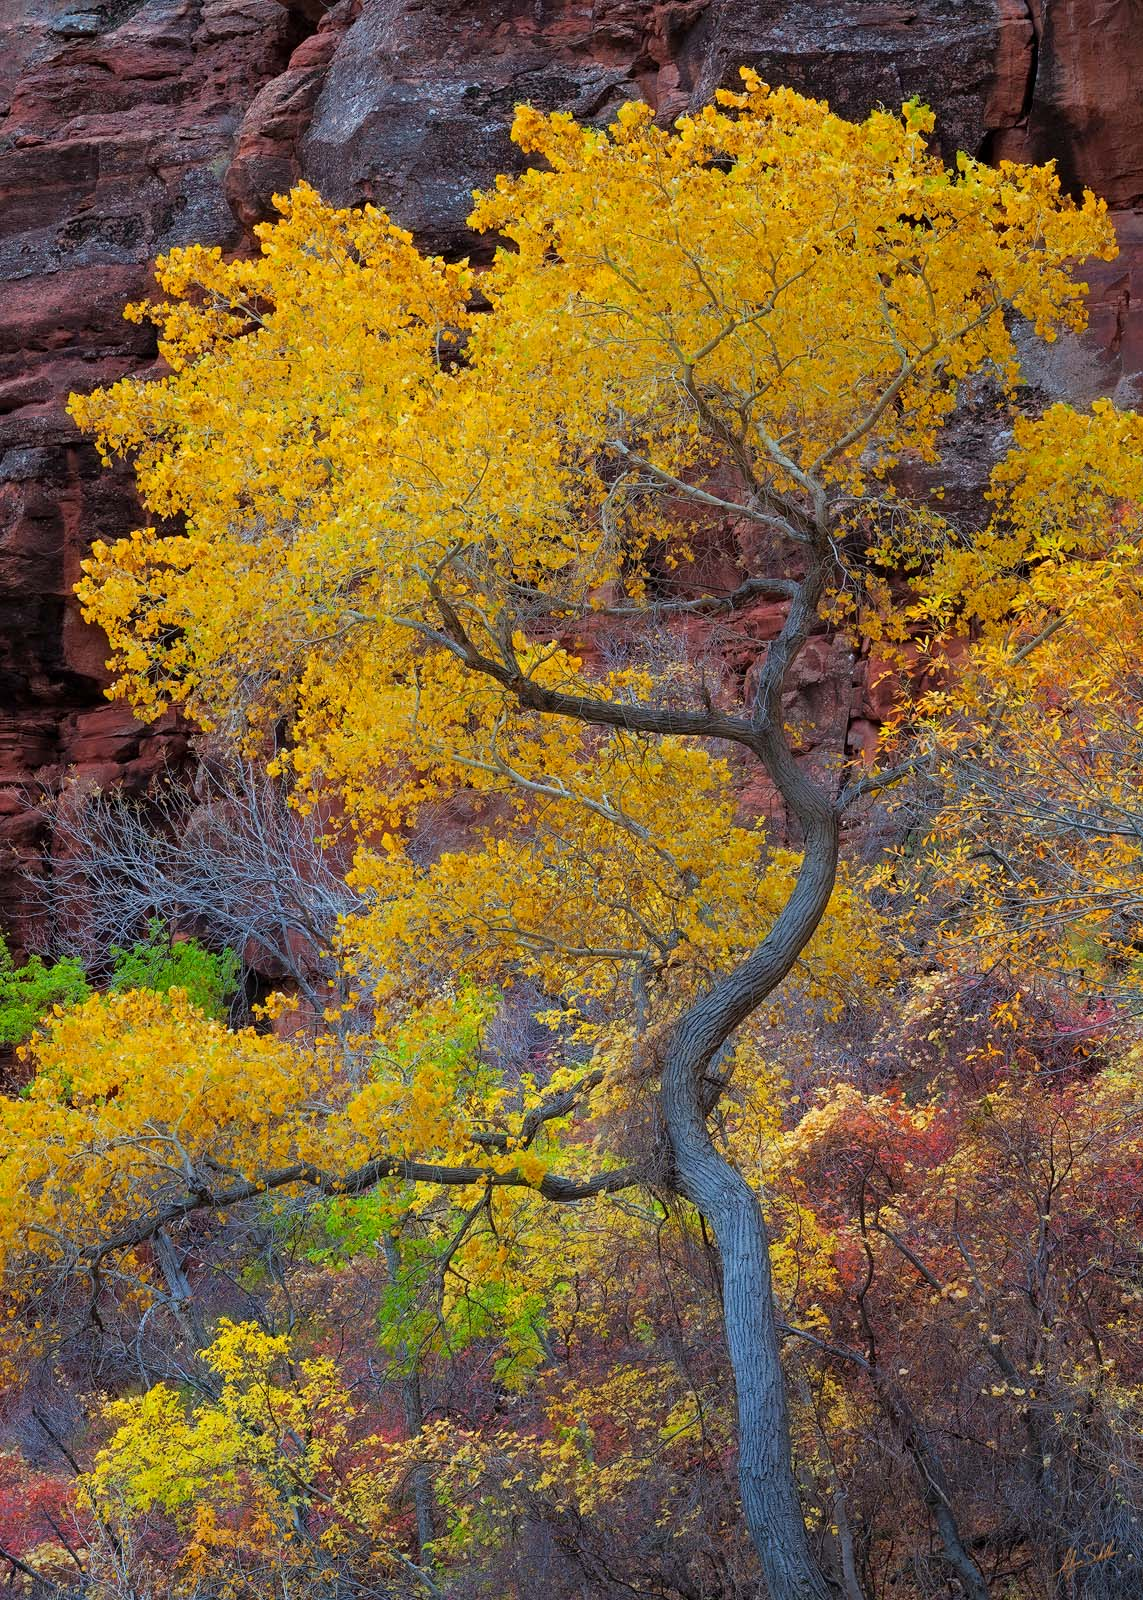 Autumn, Cottonwood, Fall, Fall Color, Fremont Cottonwood, National Park, UT, Utah, Yellow, Zion, Zion National Park, photo